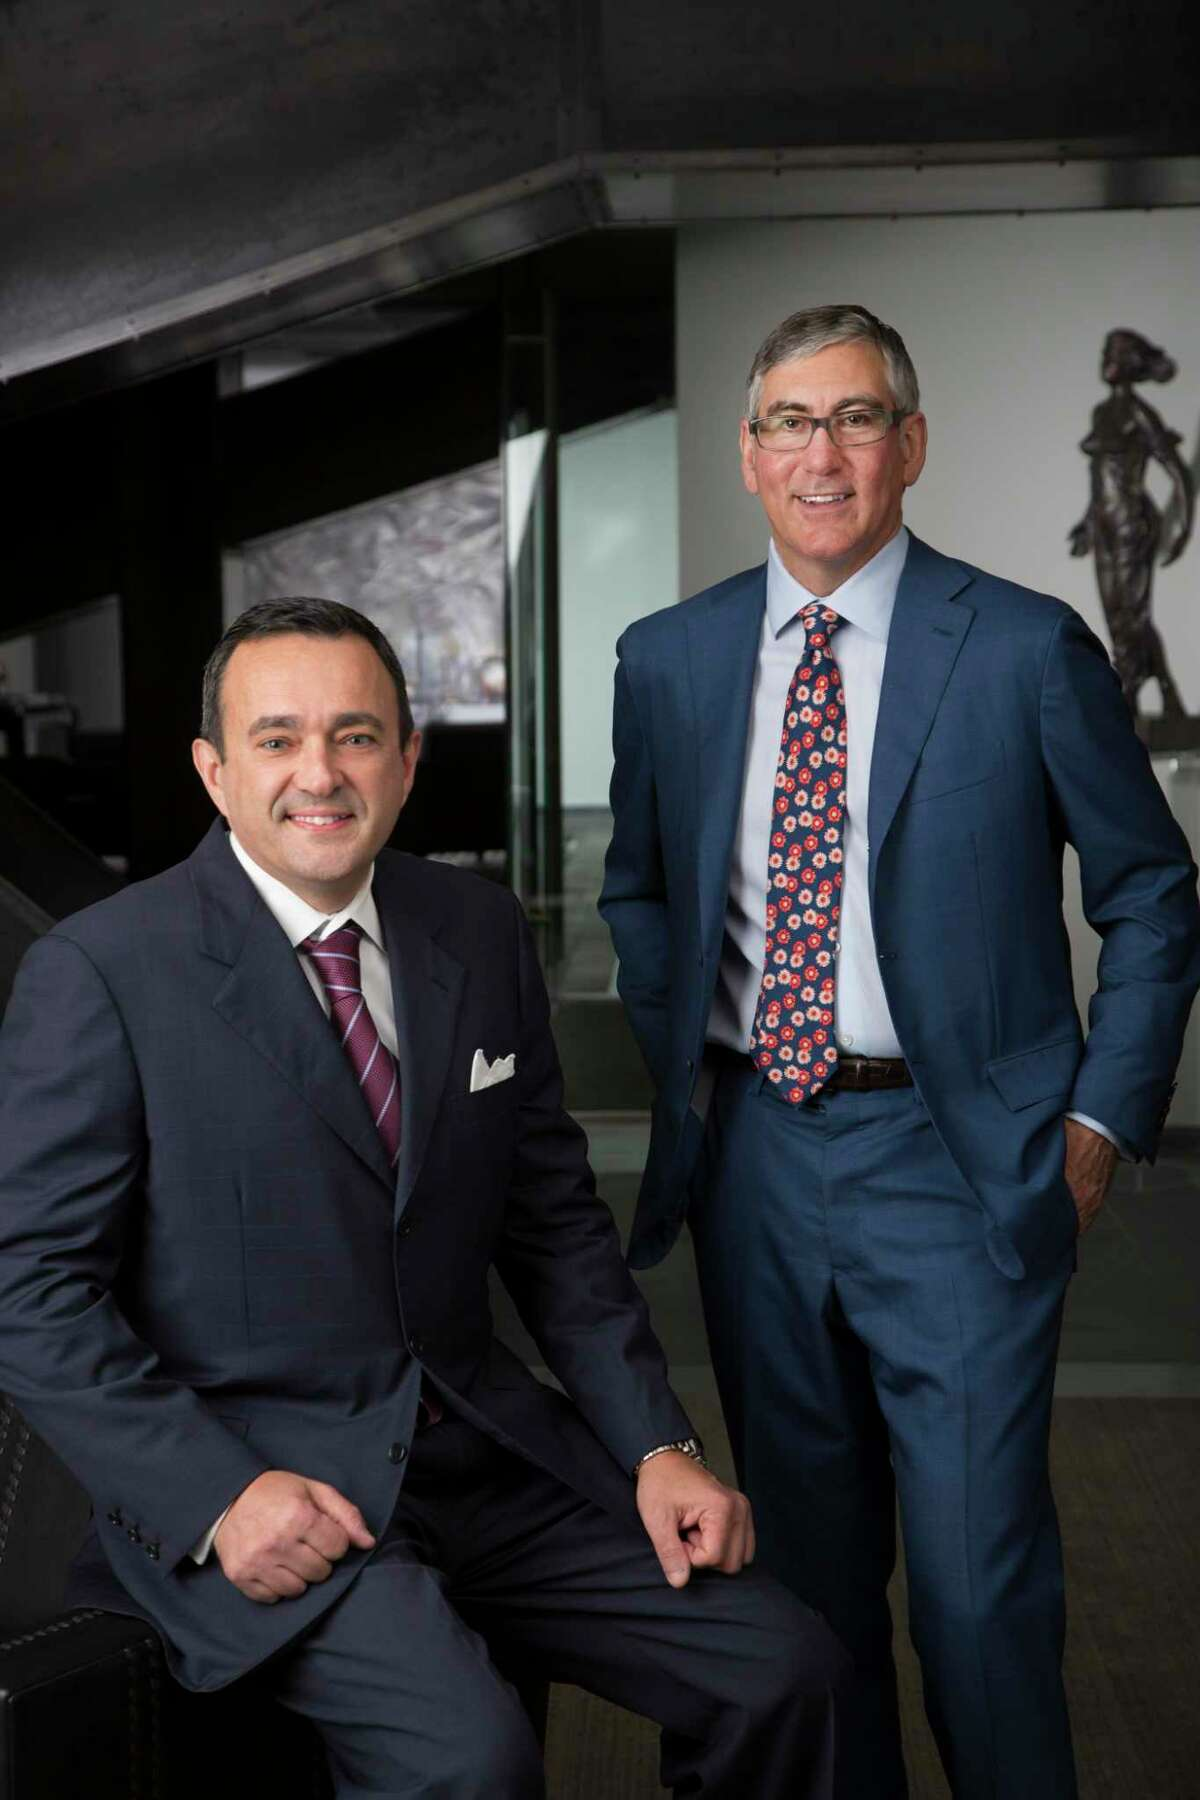 John Zavitsanos, seated, and Joe Ahmad, founding partners of Ahmad, Zavitsanos, Anaipakos, Alavi & Mensing. AZA was one of only two Texas-based law firms to make a list of elite law firms generating more than $1 million in revnues per lawyer.